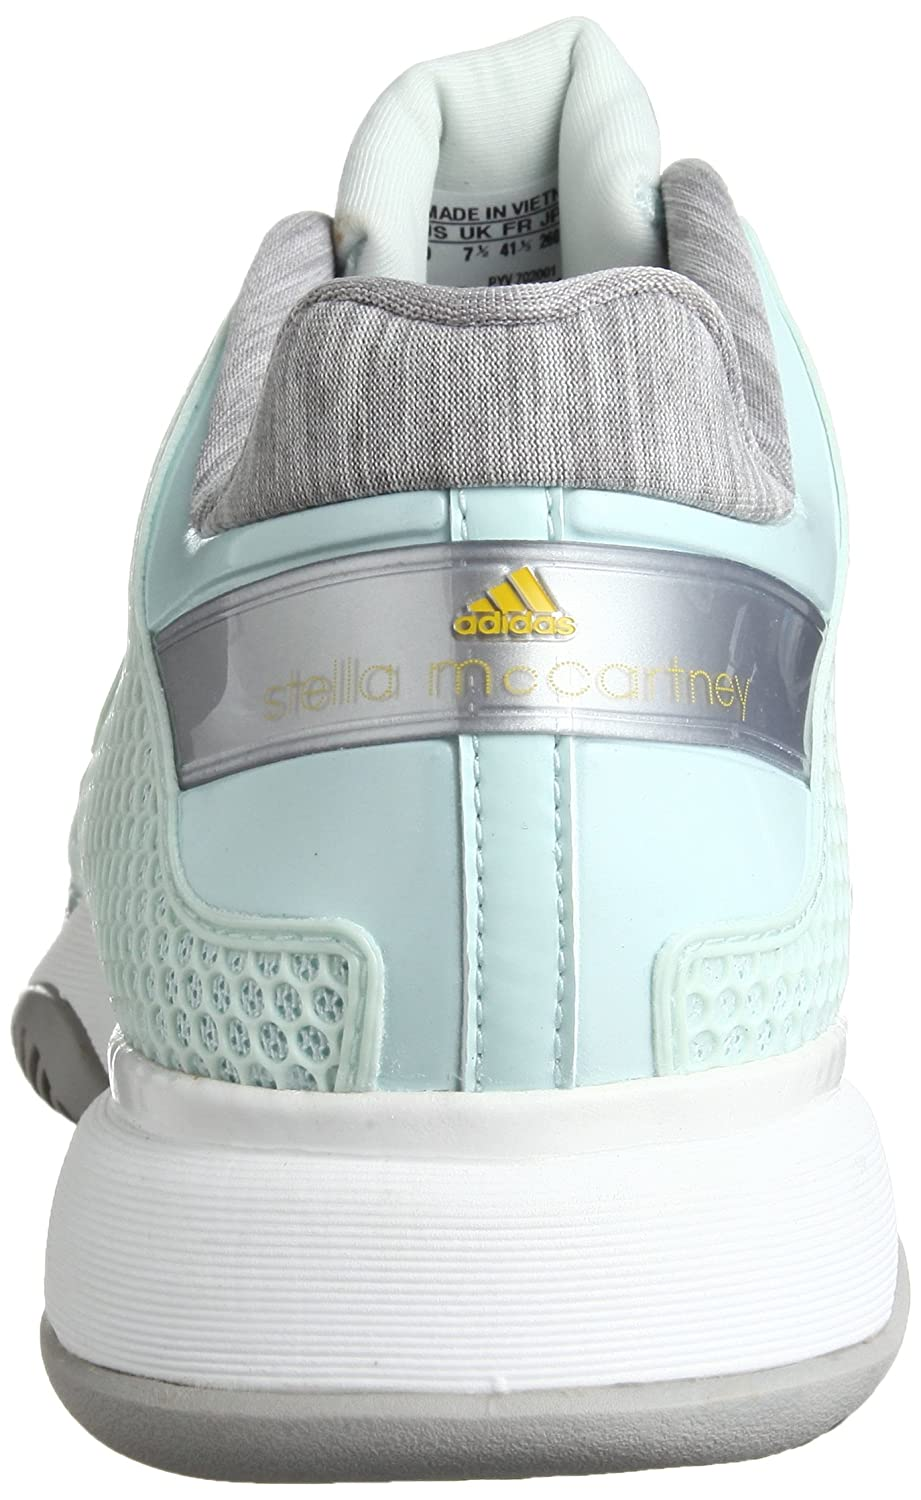 Chaussures Adidas Stella Mccartney Barricade cwomW